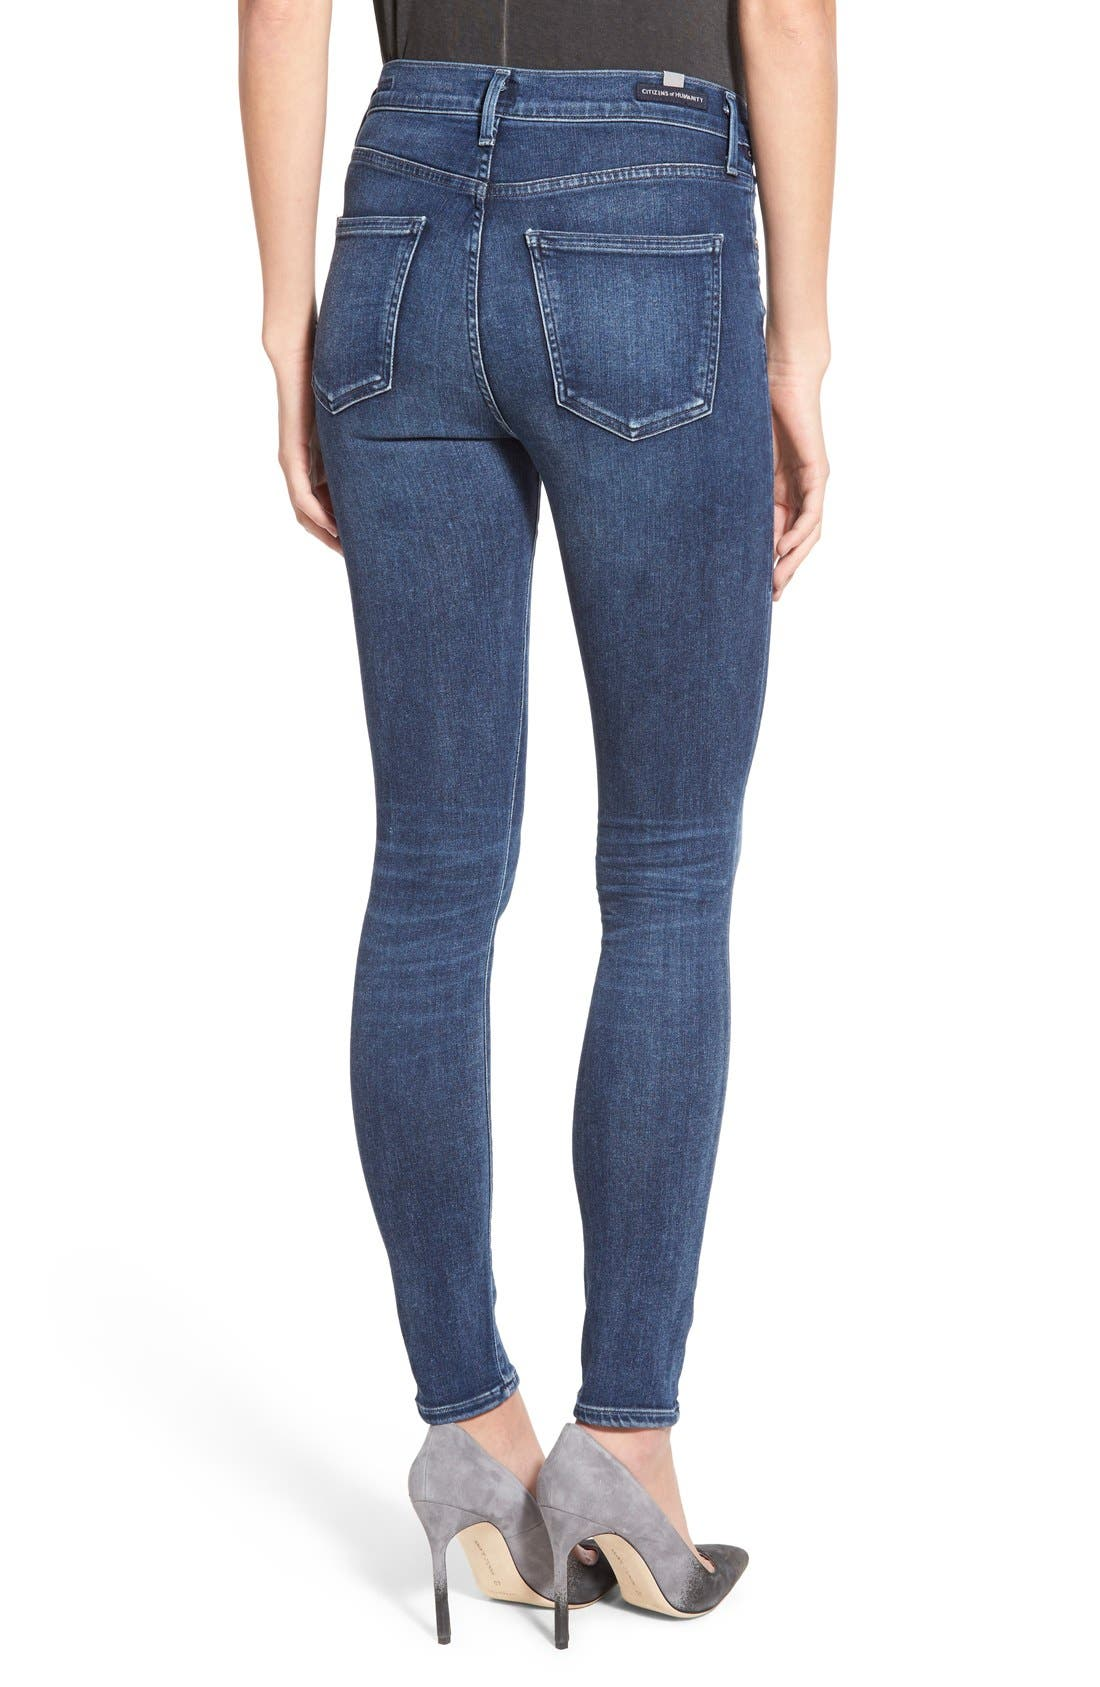 CITIZENS OF HUMANITY, Sculpt - Rocket High Waist Skinny Jeans, Alternate thumbnail 5, color, WAVERLY